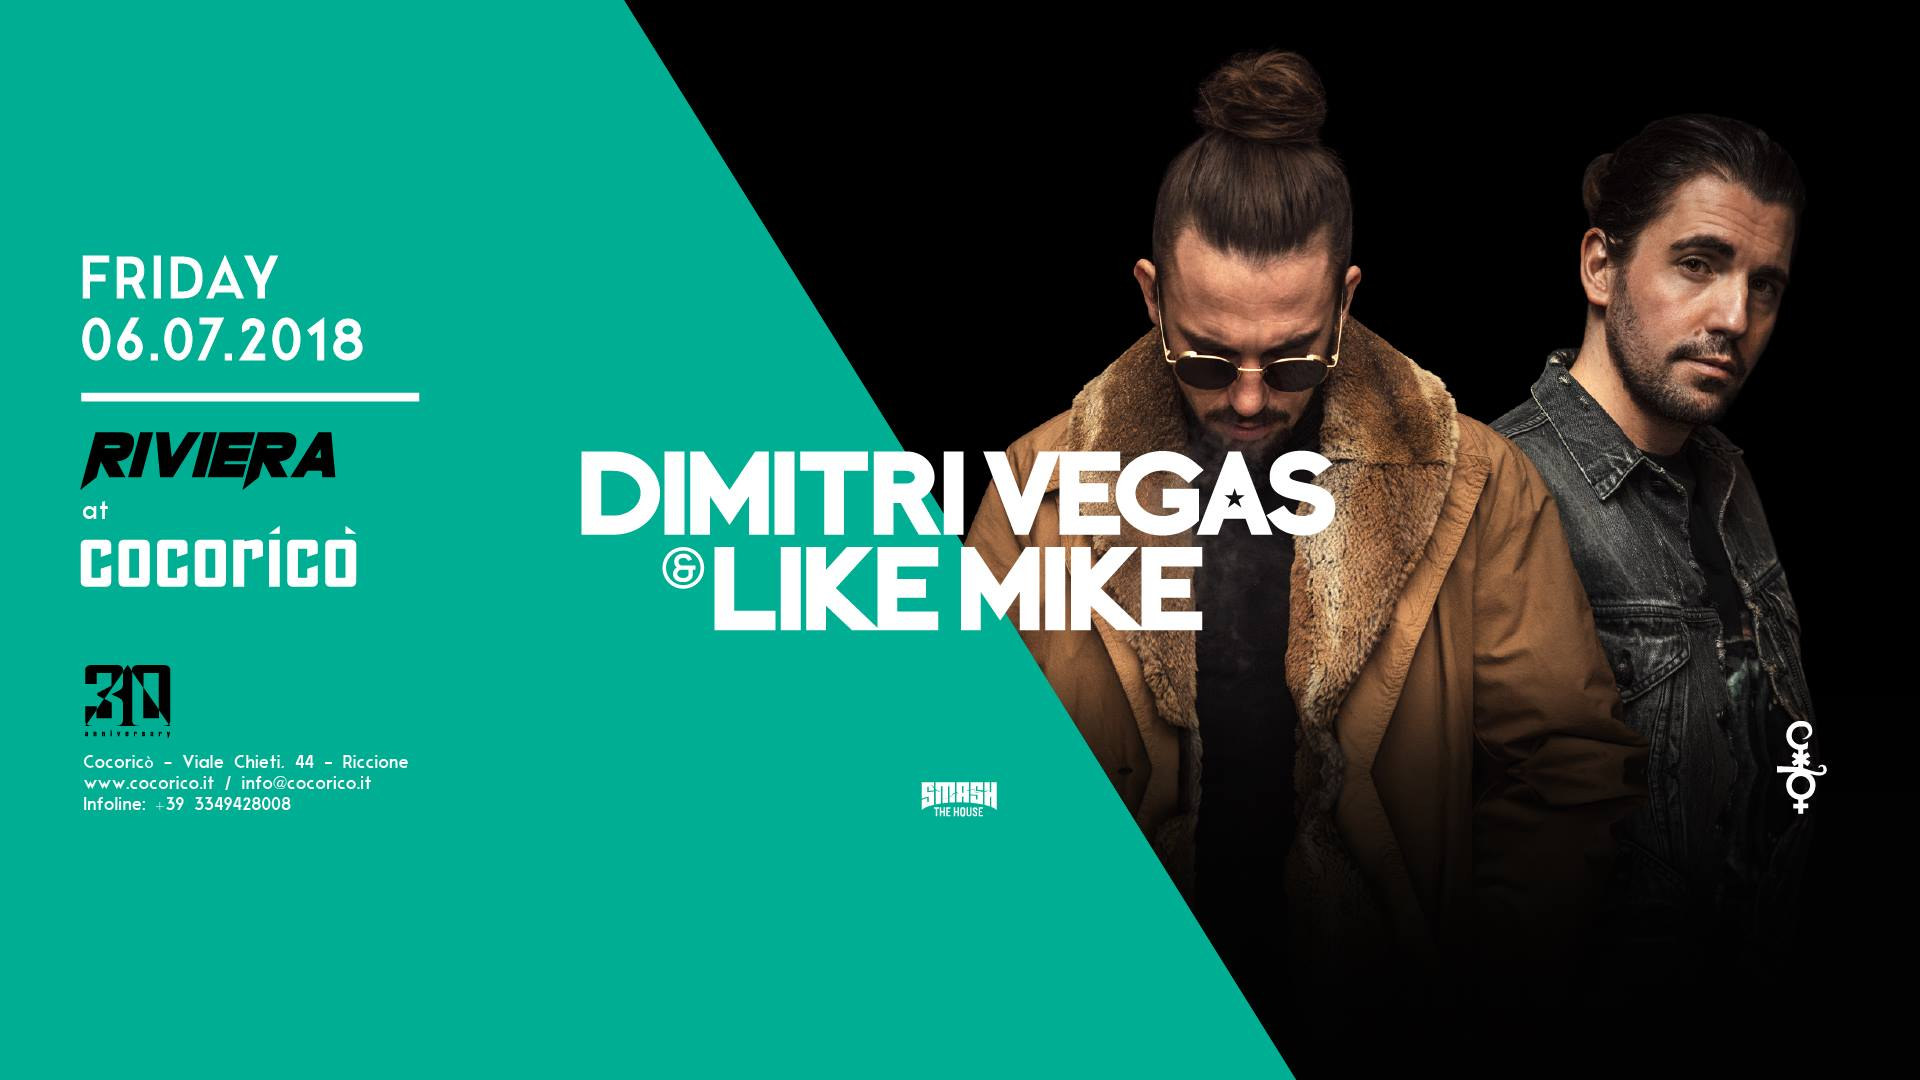 dimitri-vegas-and-like-mike-cocorico-riccione